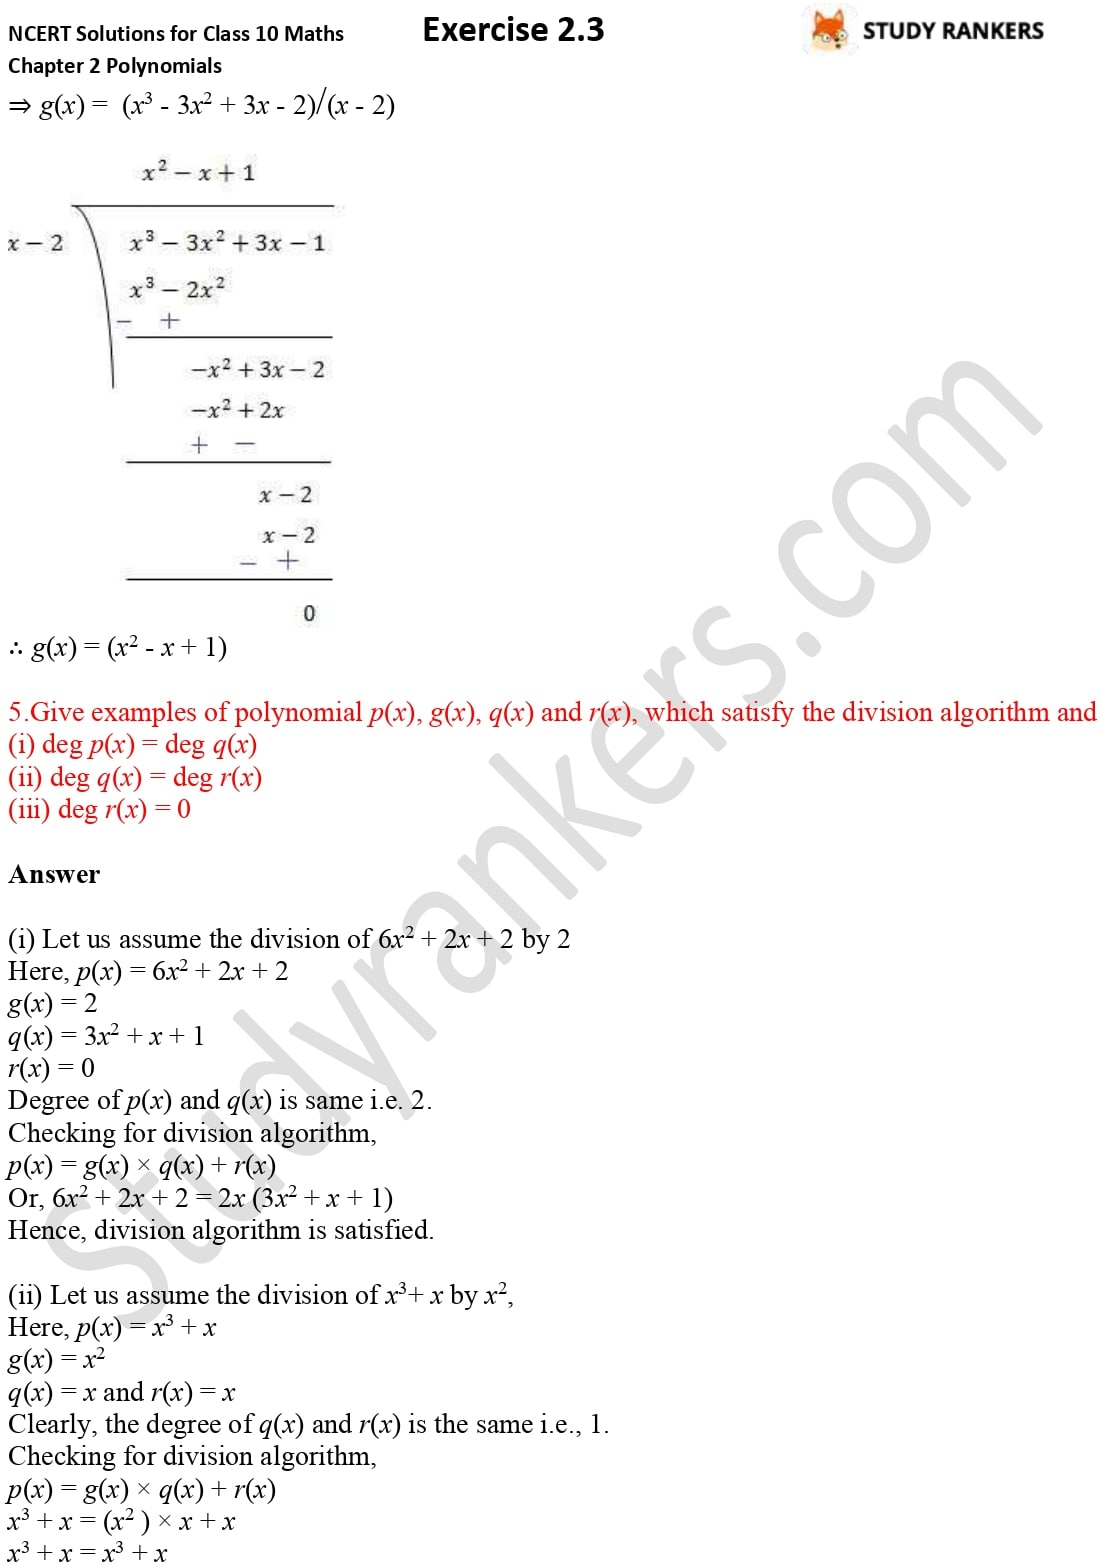 NCERT Solutions for Class 10 Maths Chapter 2 Polynomials Exercise 2.3 5